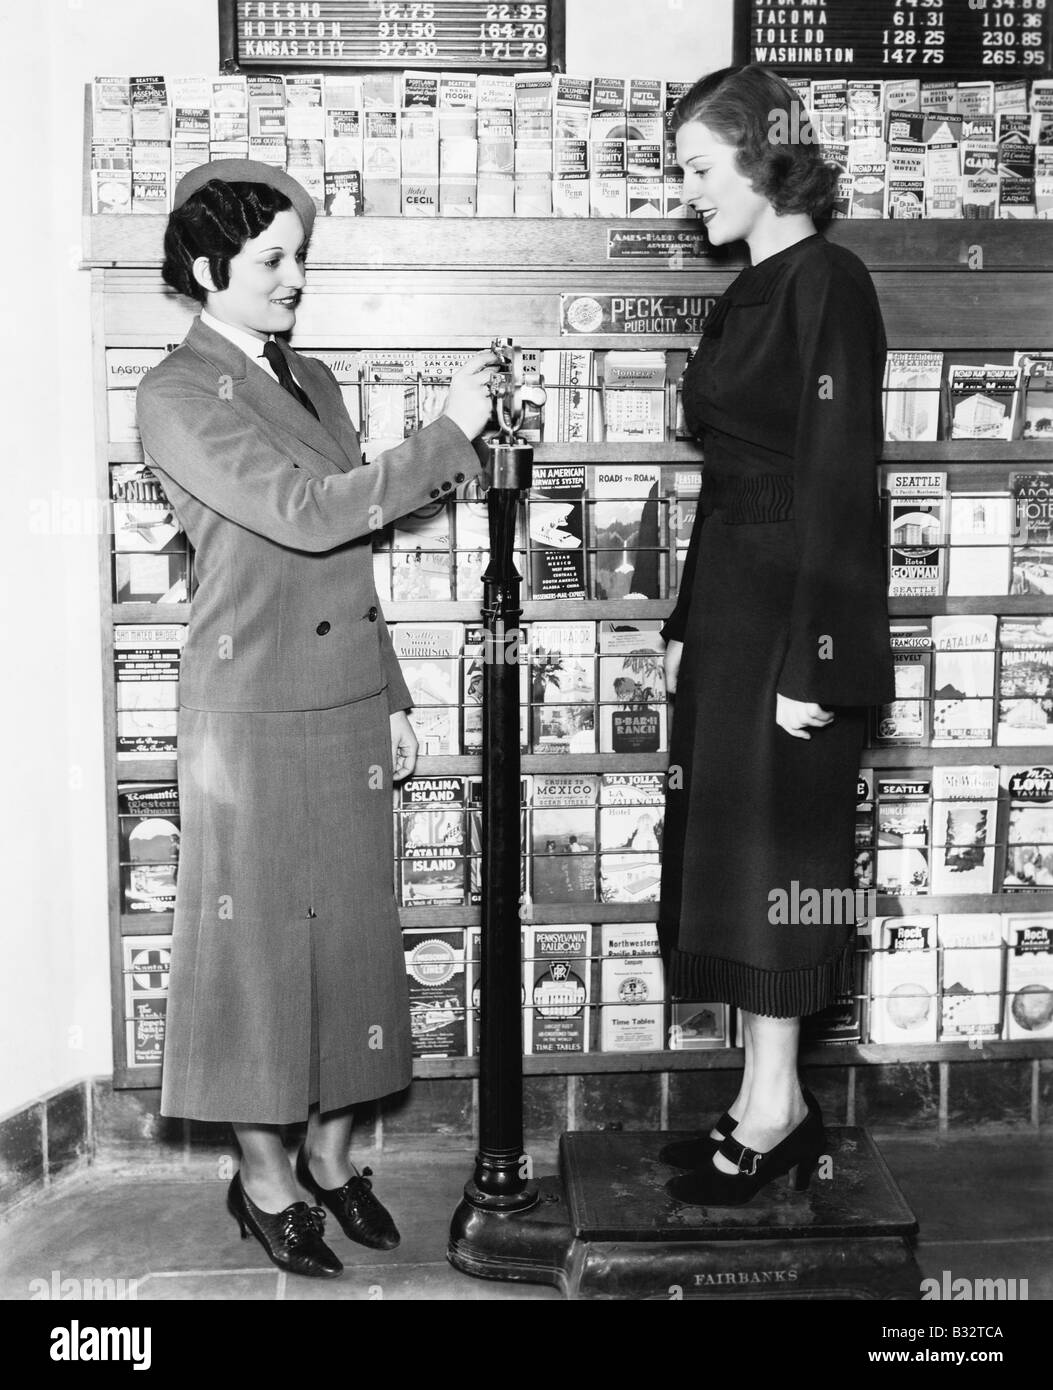 Profile of a young woman in an uniform measuring weight of another young woman on a weighing scale - Stock Image